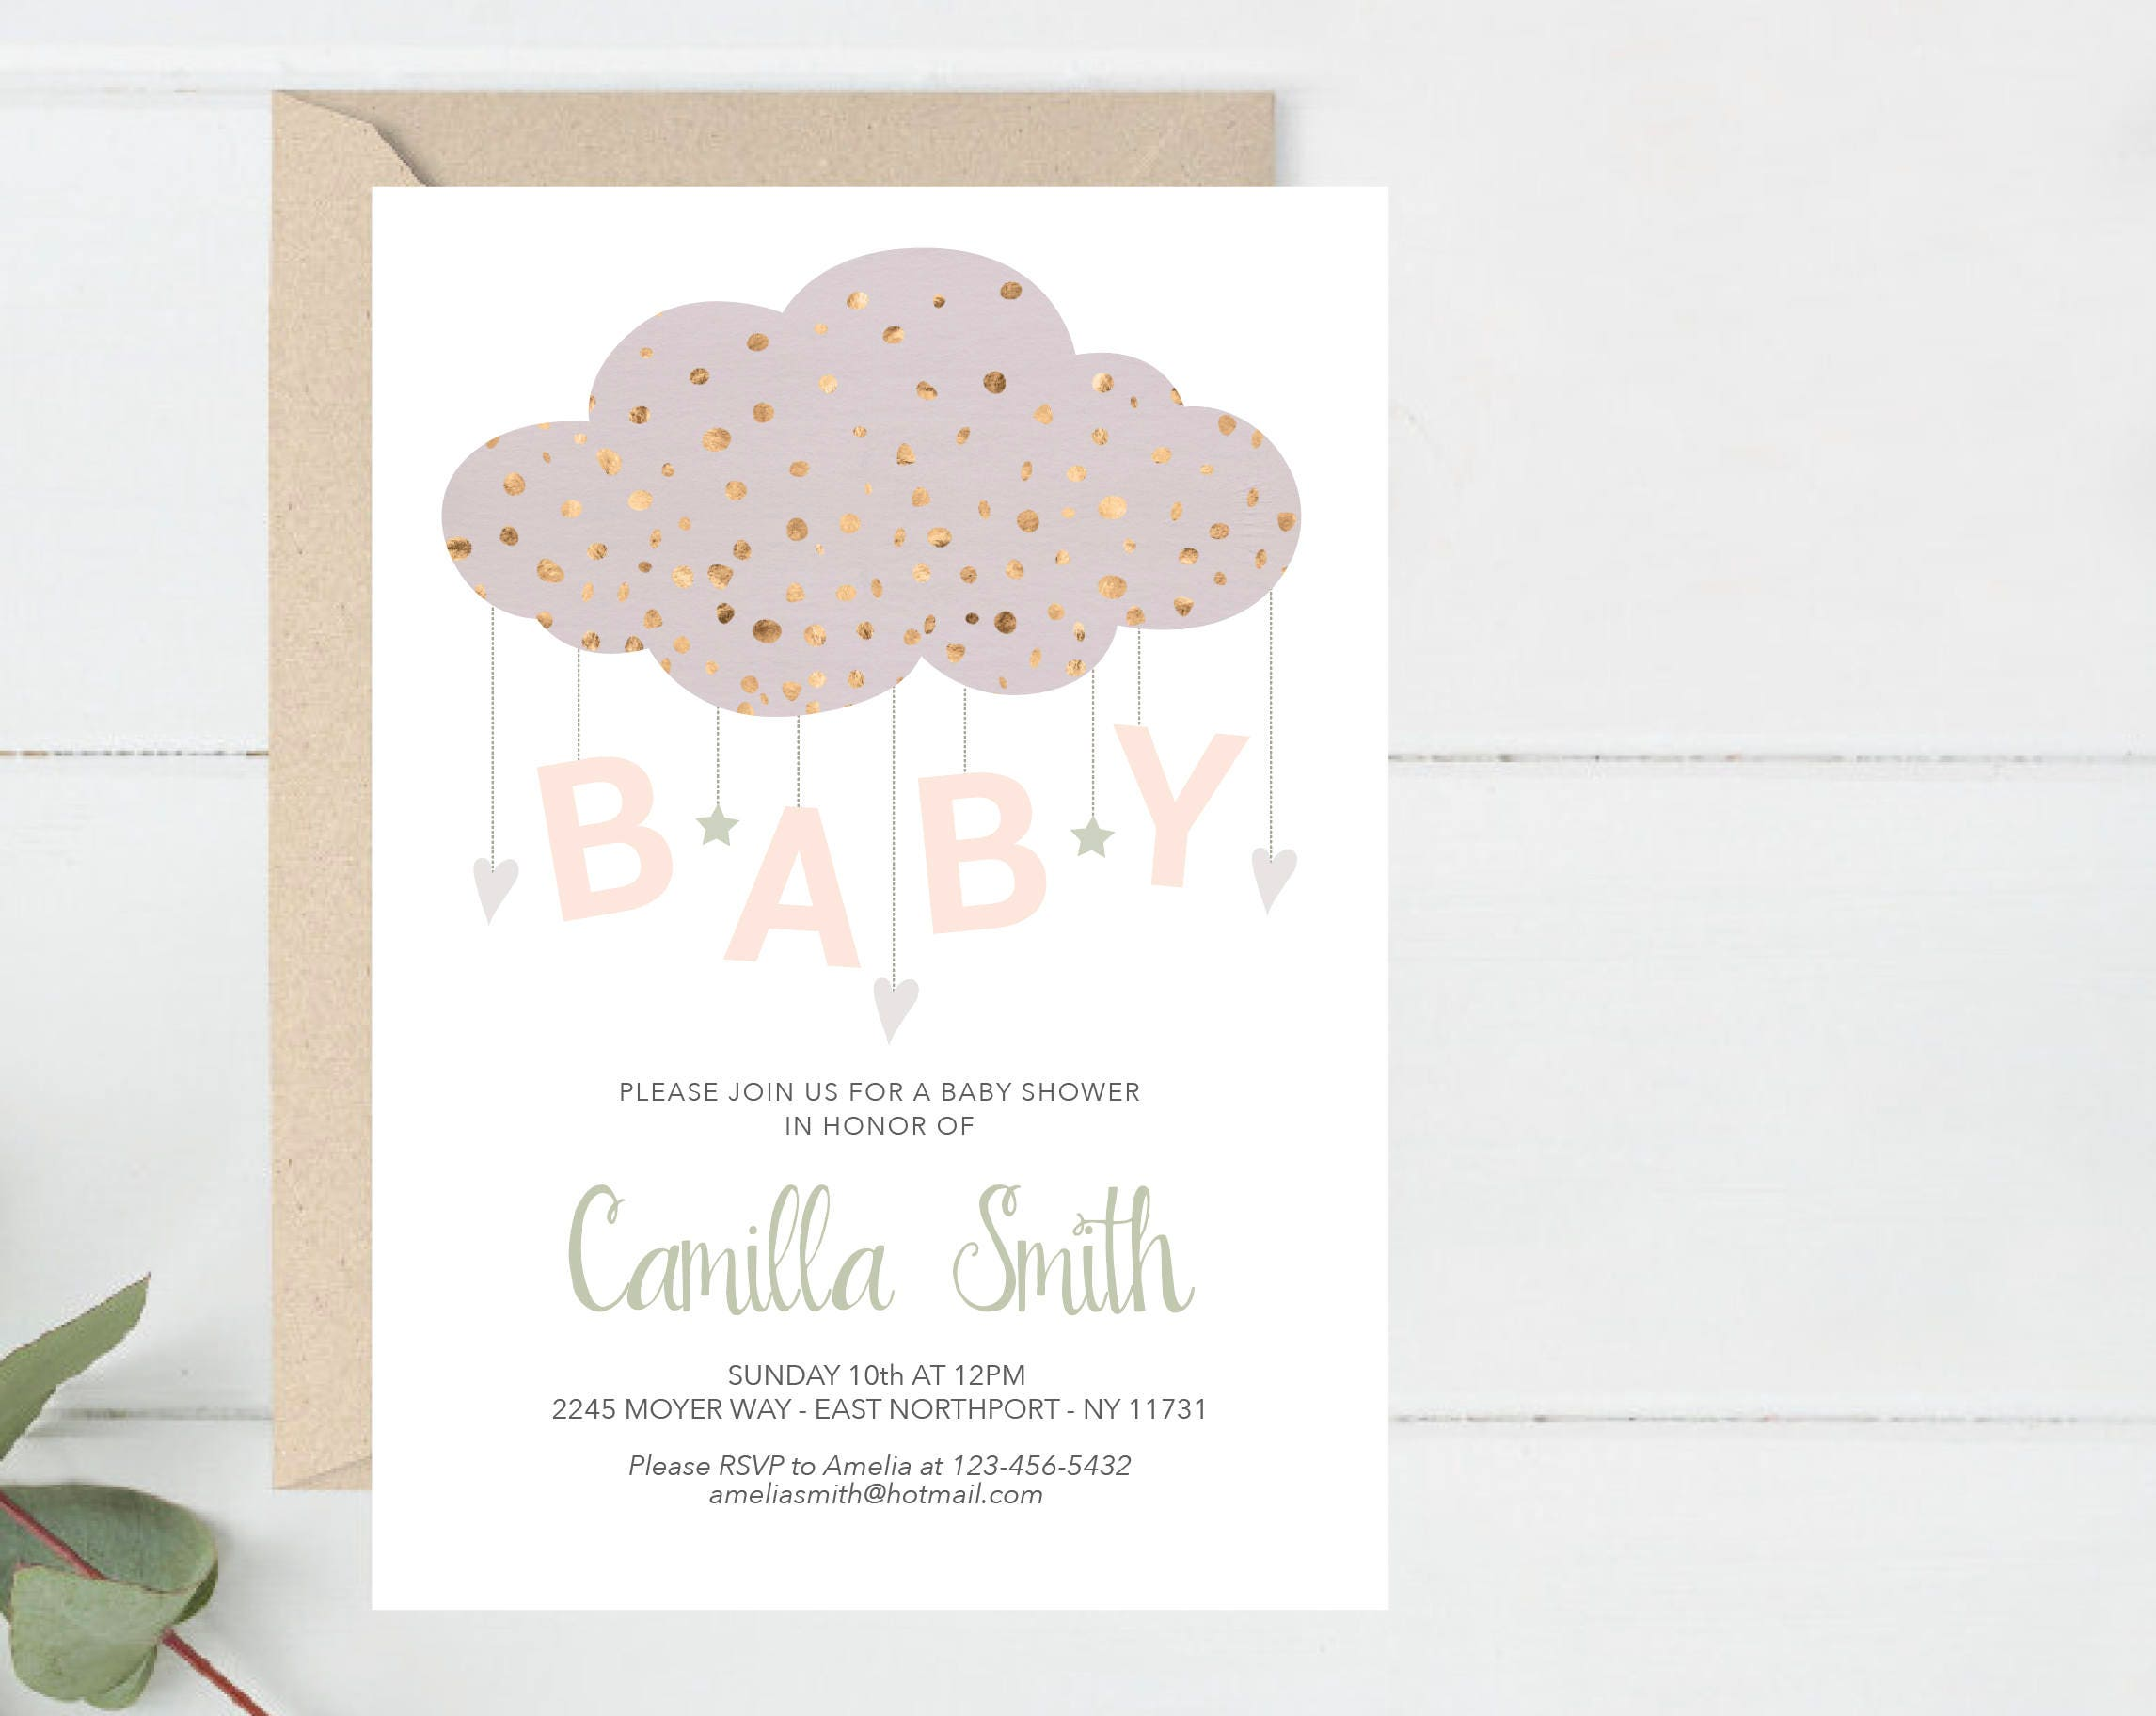 of wreath printable baby shower best free invitation peasy easy awesome bunny fun invitations watercolor and